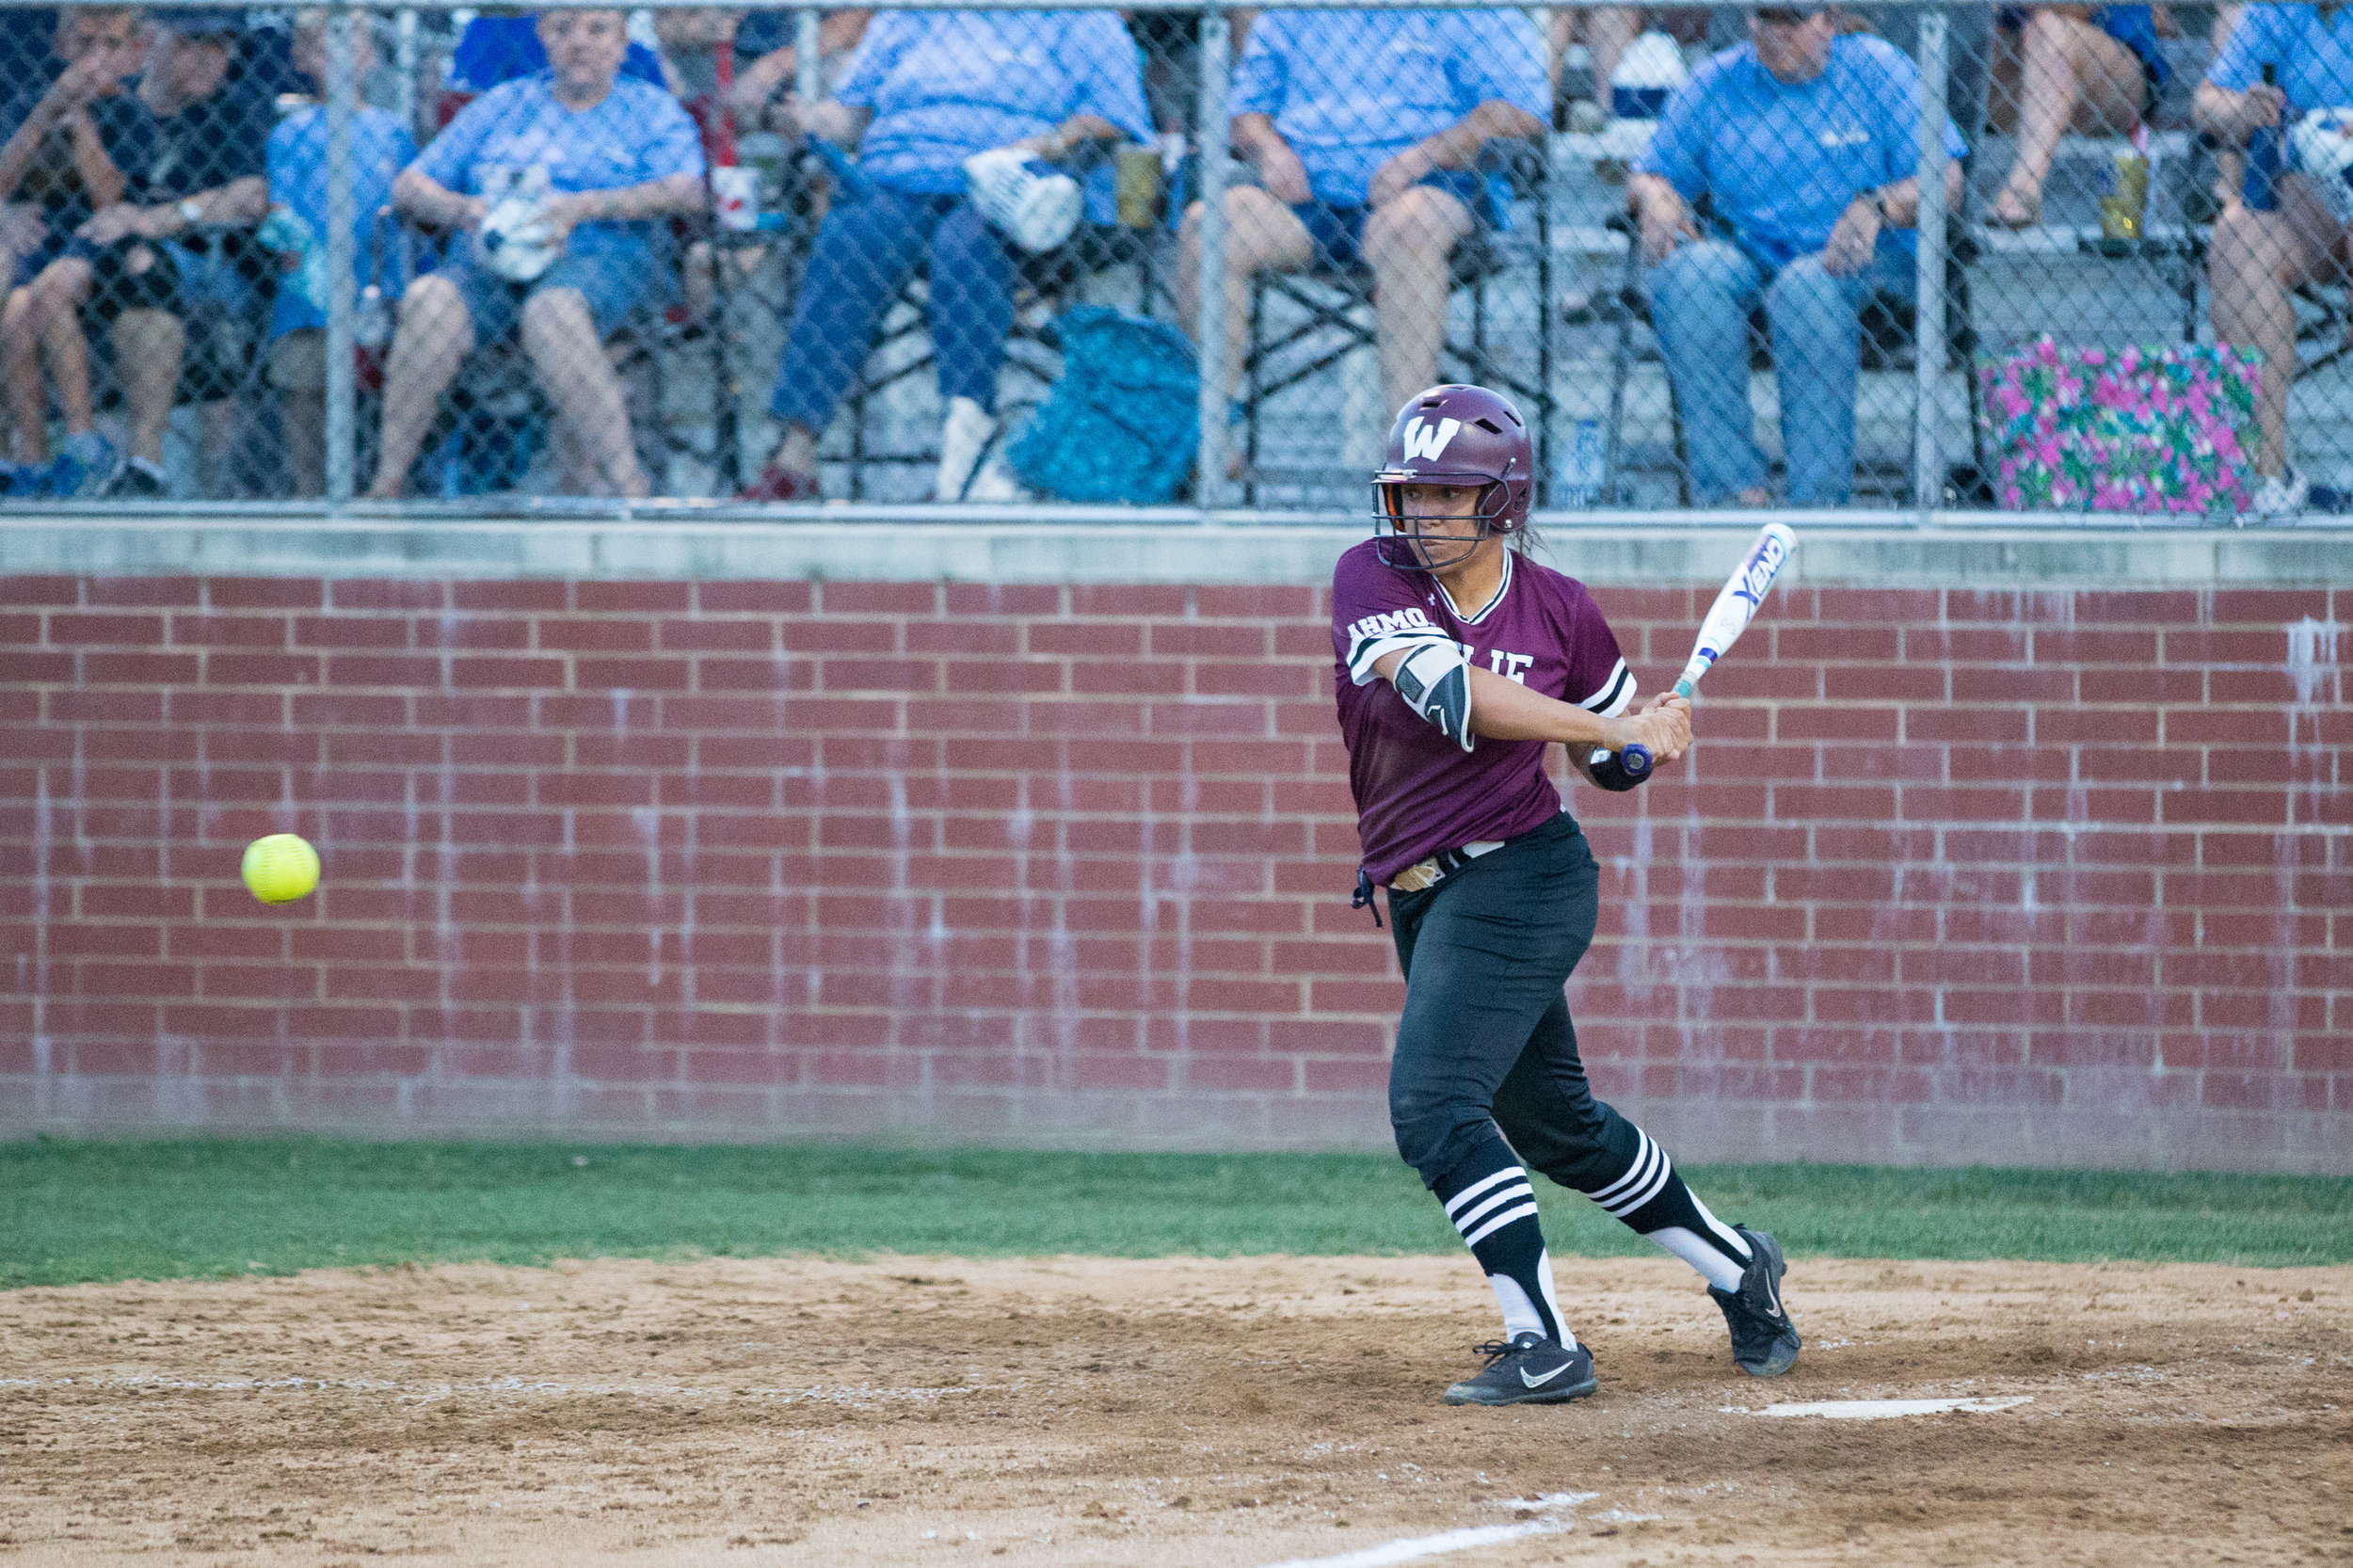 5_18 Wylie Softball-157.jpg